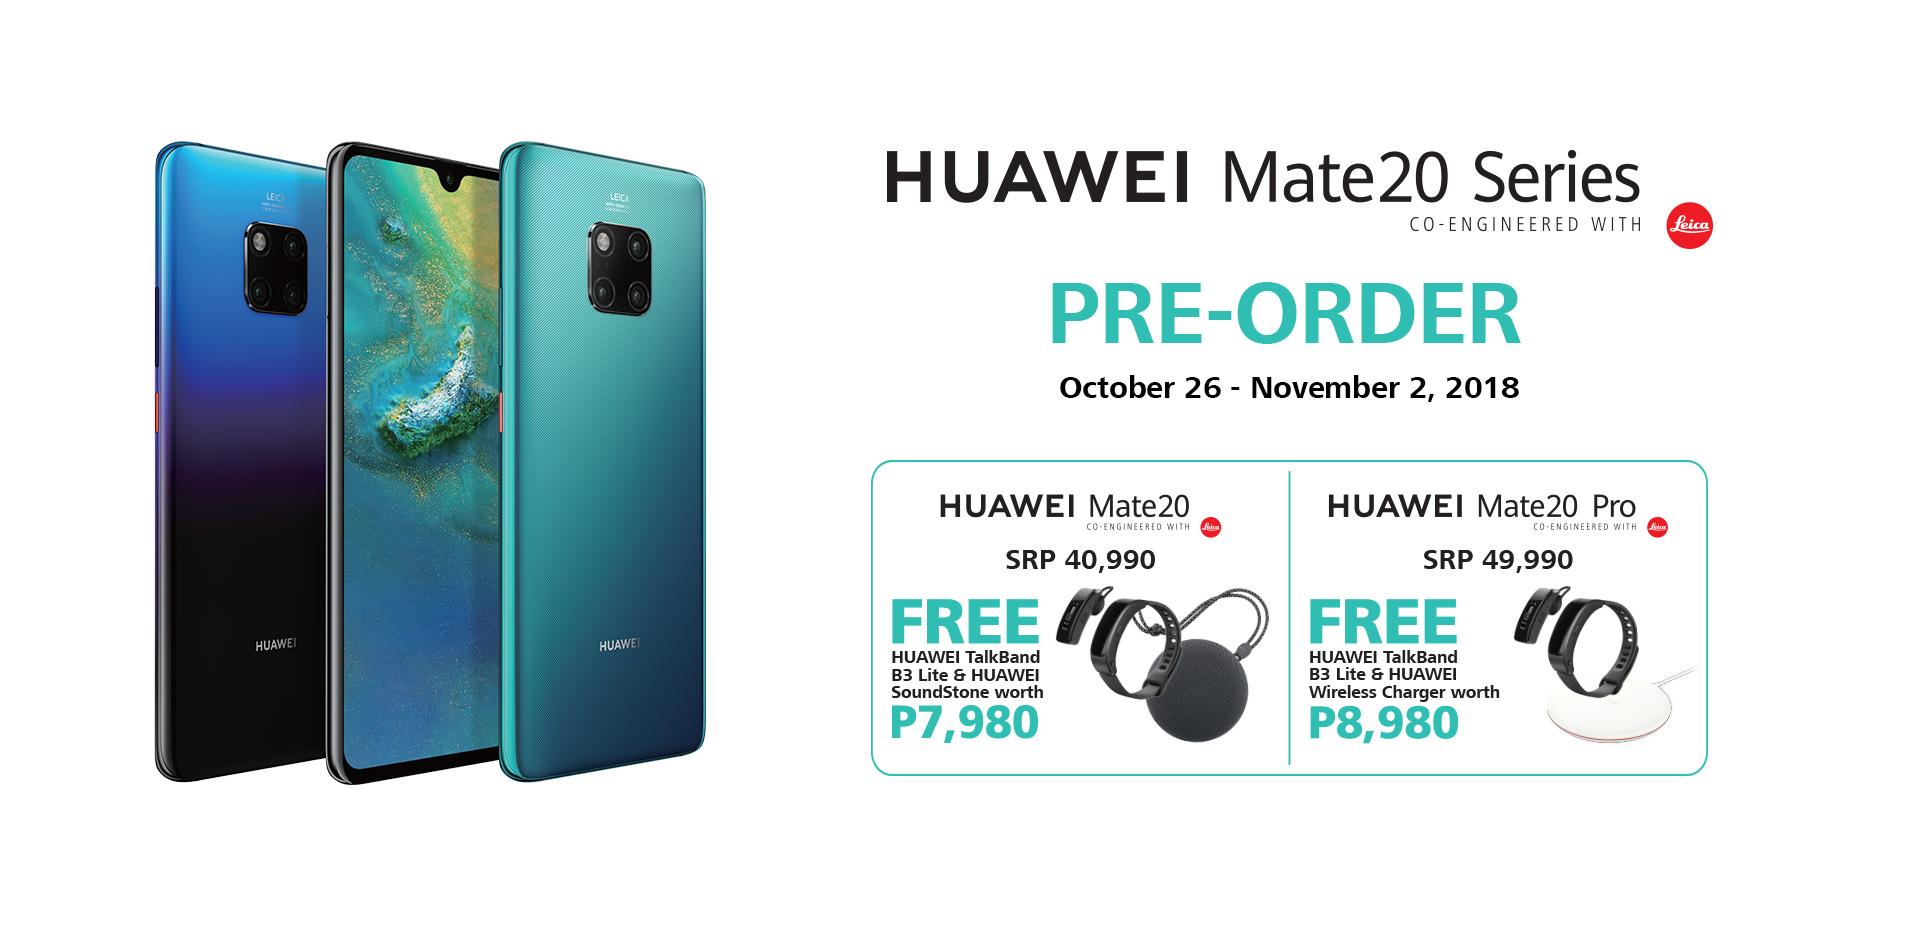 HUAWEI Mate 20 Series Pre-Order Mechanics